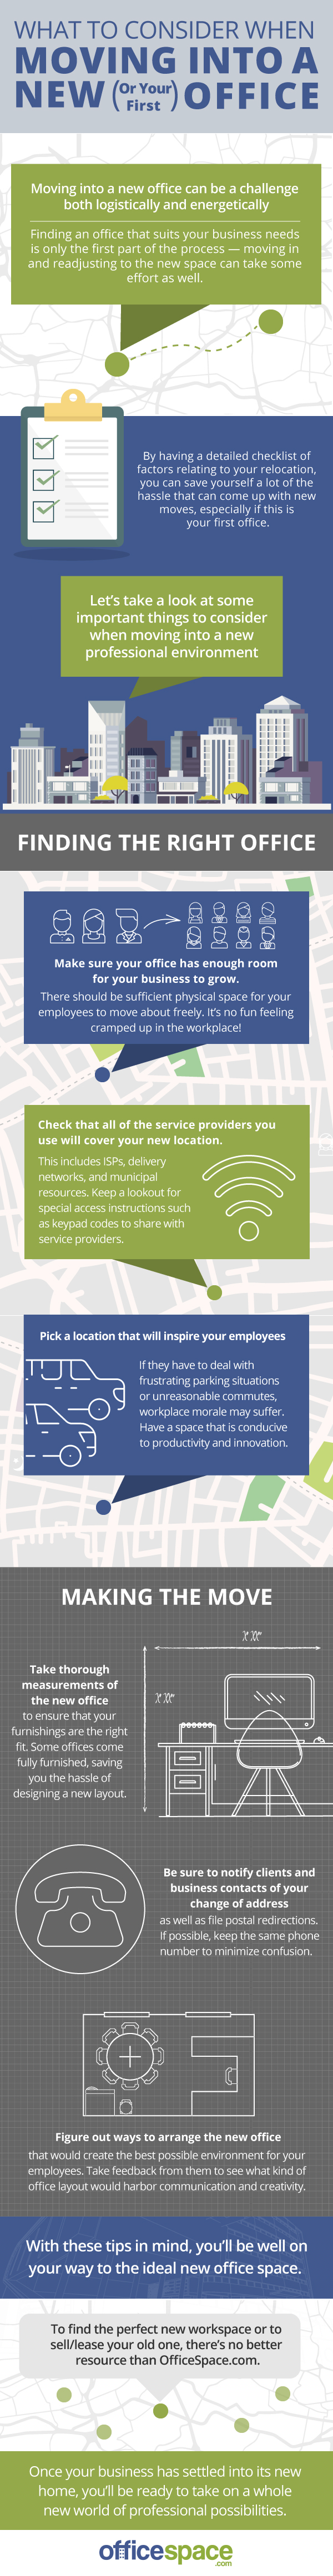 Infographic of What to Consider When Moving Into A New (Or Your First) Office